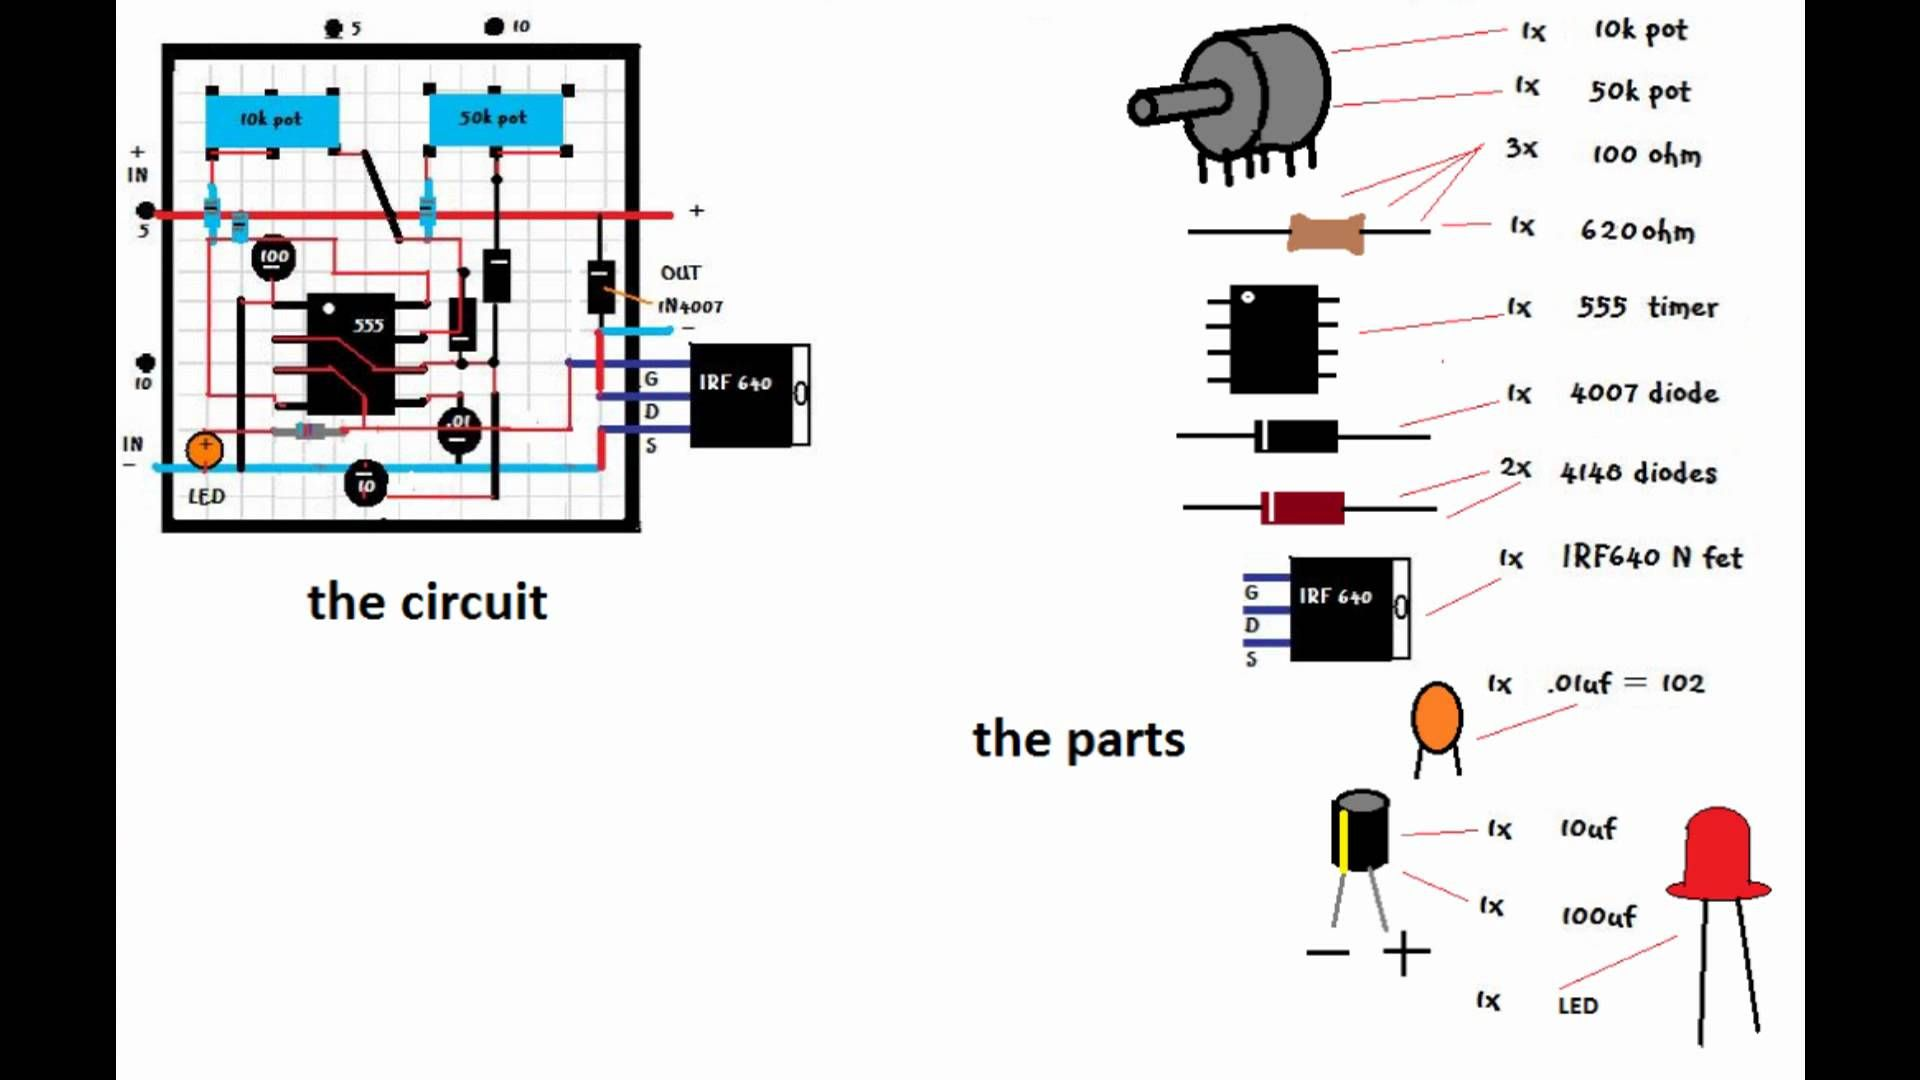 efie and pwm wiring diagram for hho systems 2006 kia optima engine how to make a buck converter circuit free energy